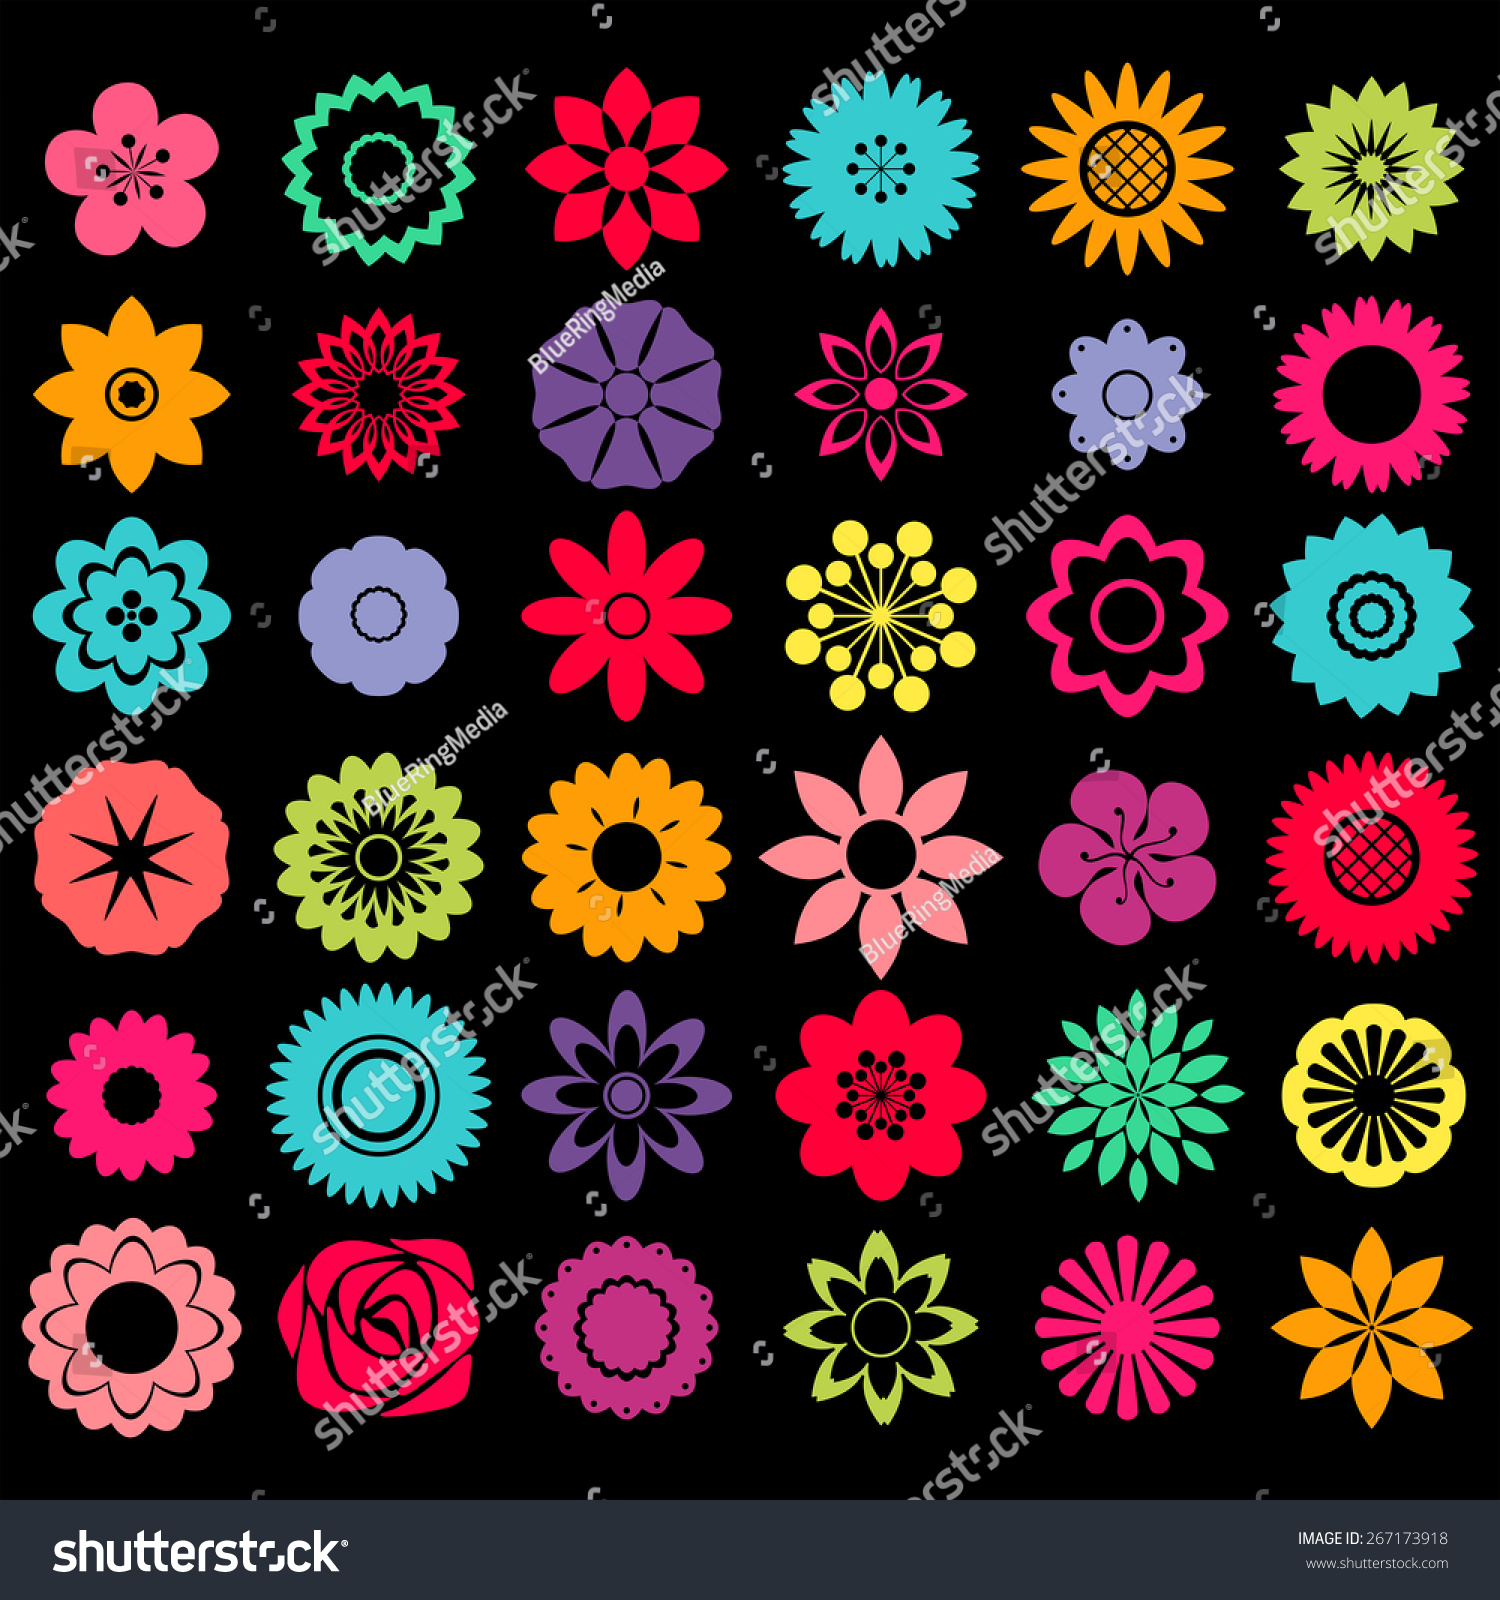 Different patterns flower shape designs stock vector for Different design